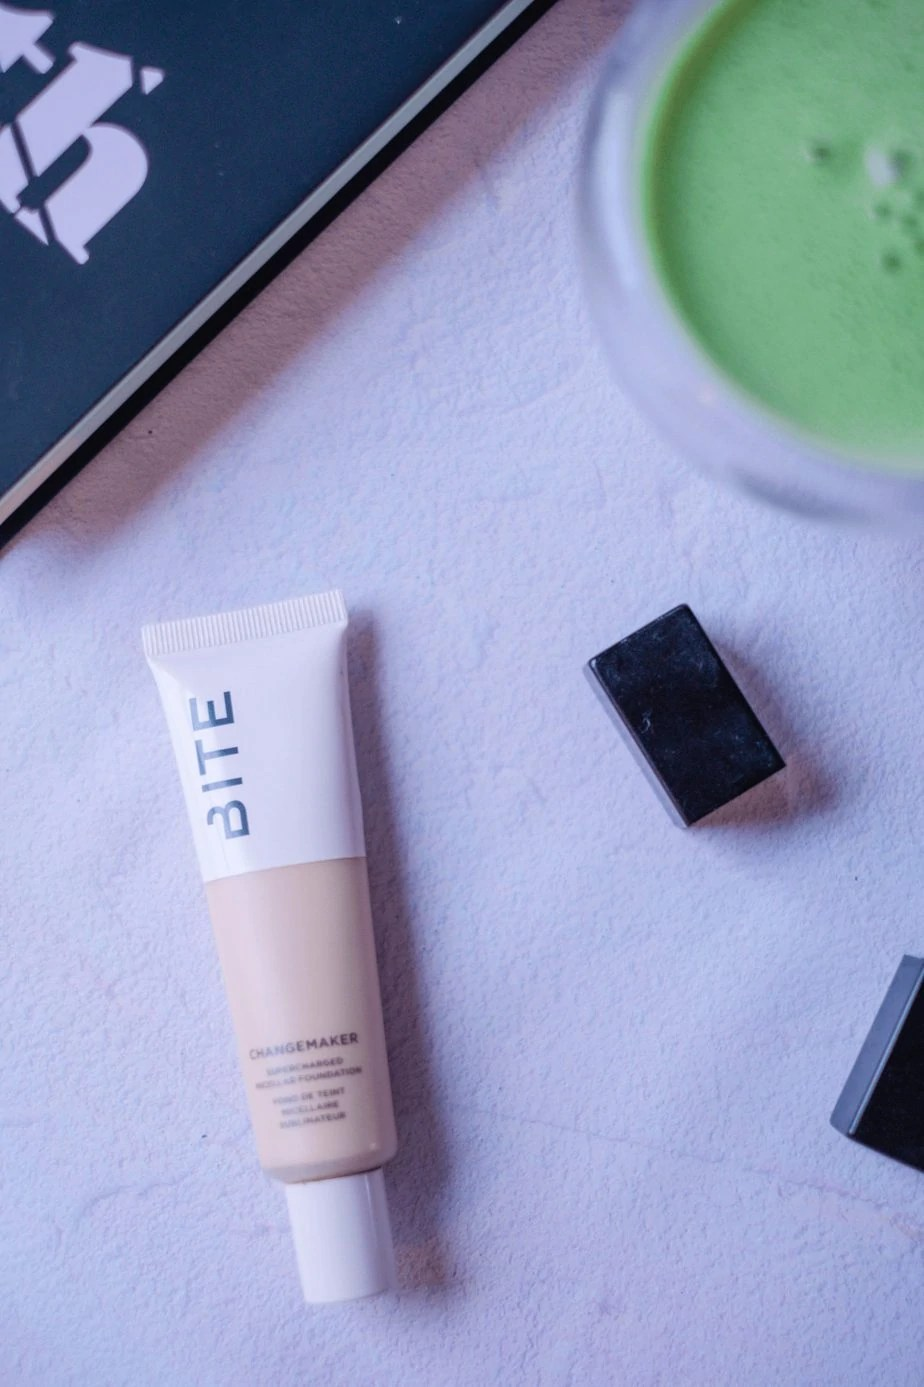 Is The Bite Beauty Micellar Foundation The Clean Version Of IT Cosmetics CC Cream- #whatsavvysaid #bitebeauty